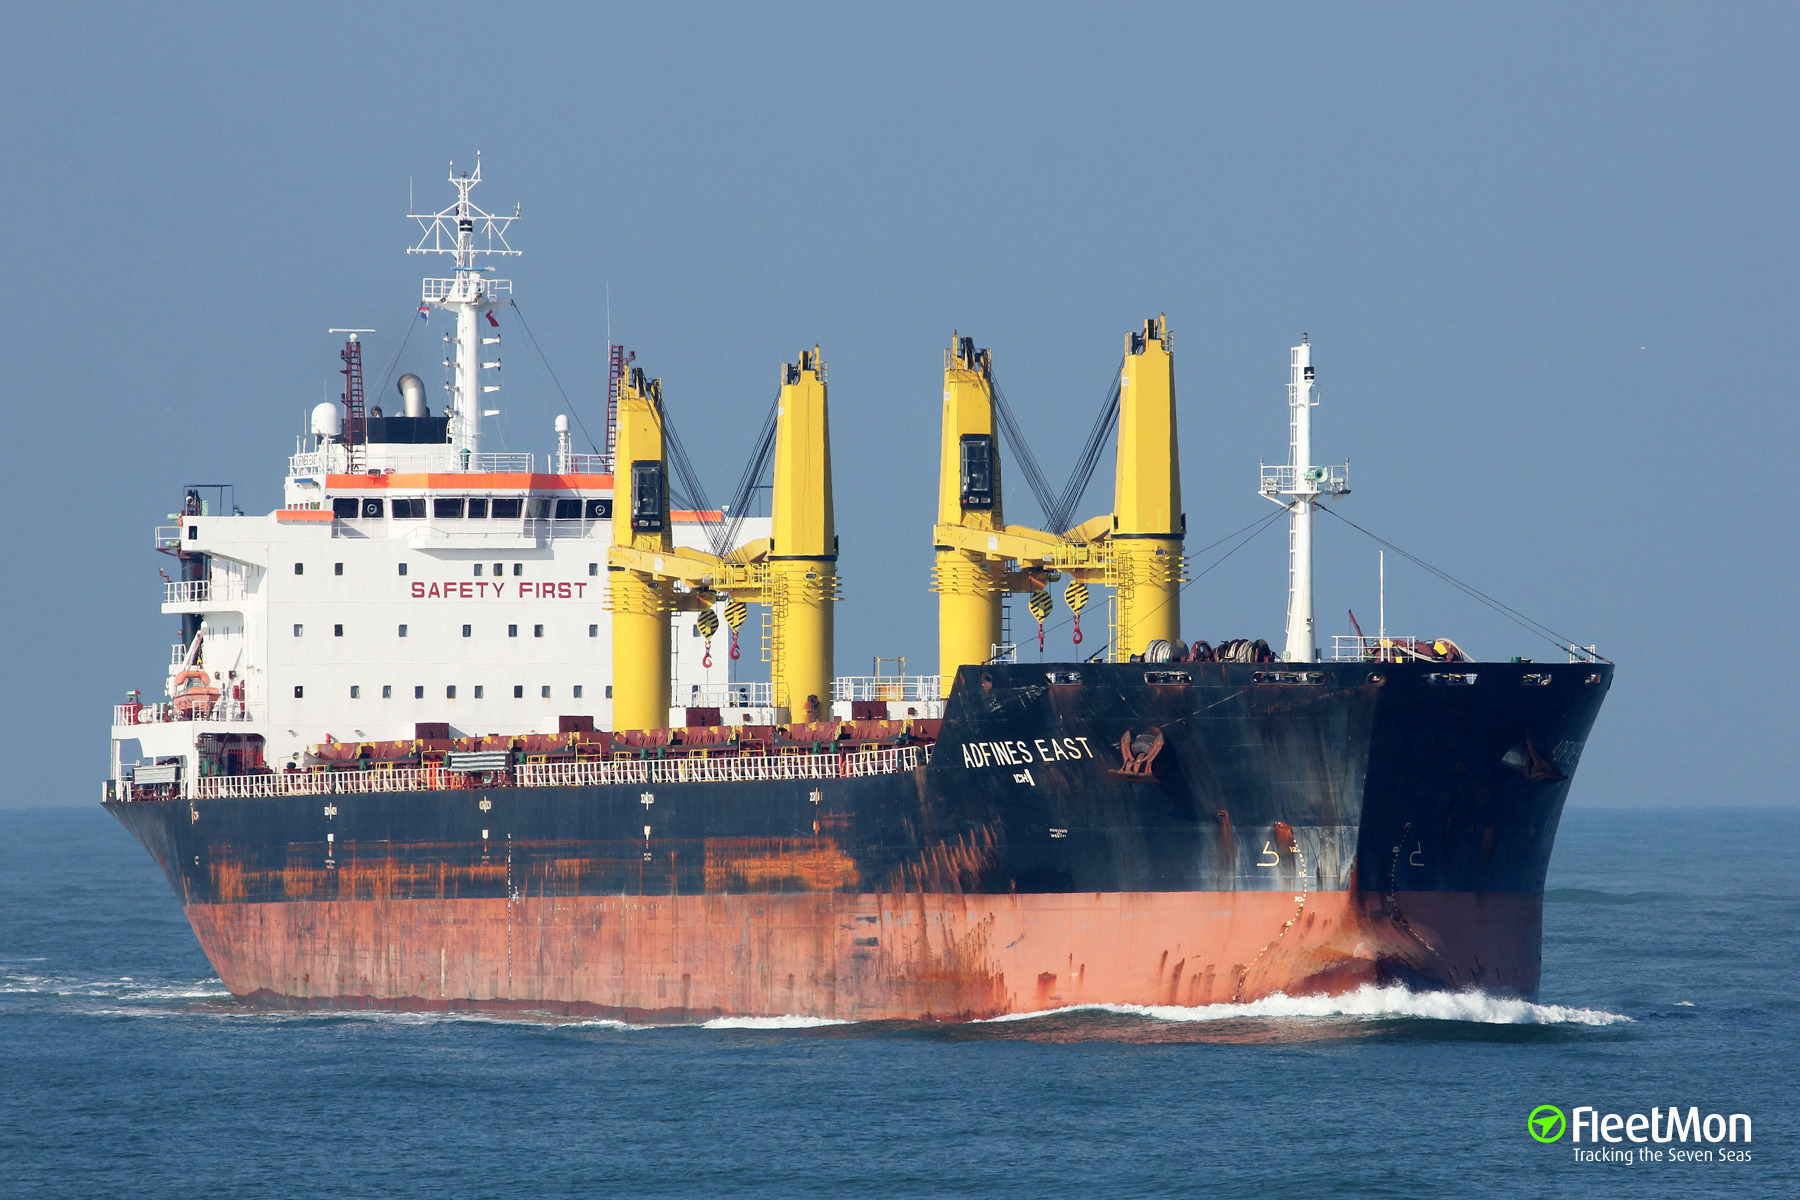 The unfortunate Swiss bulk carrier Adfines East, Portlend, Oregon